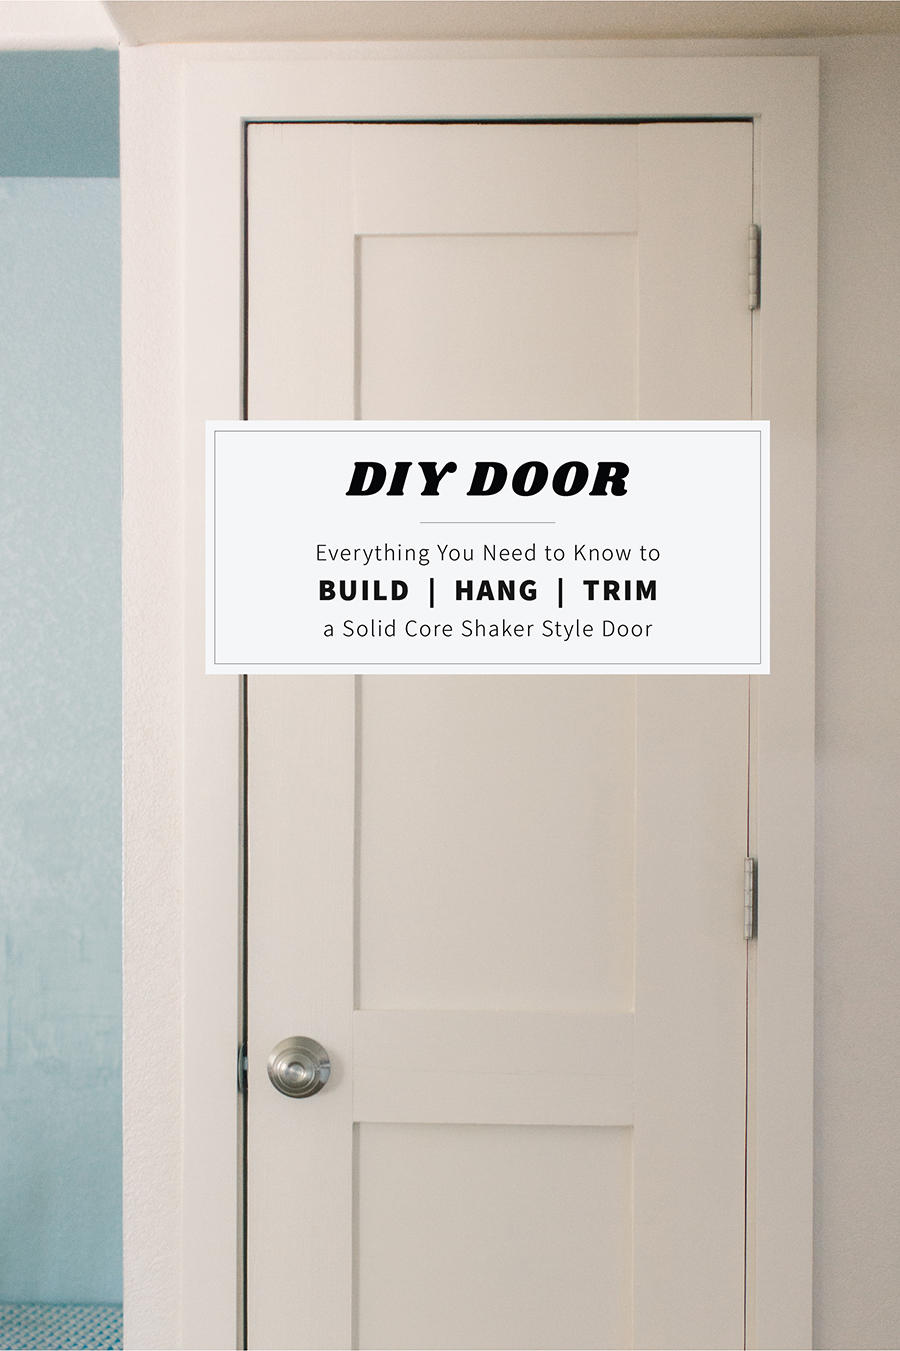 DIY Shaker Style Door: Everything You Need to Know to Build Hang and Trim